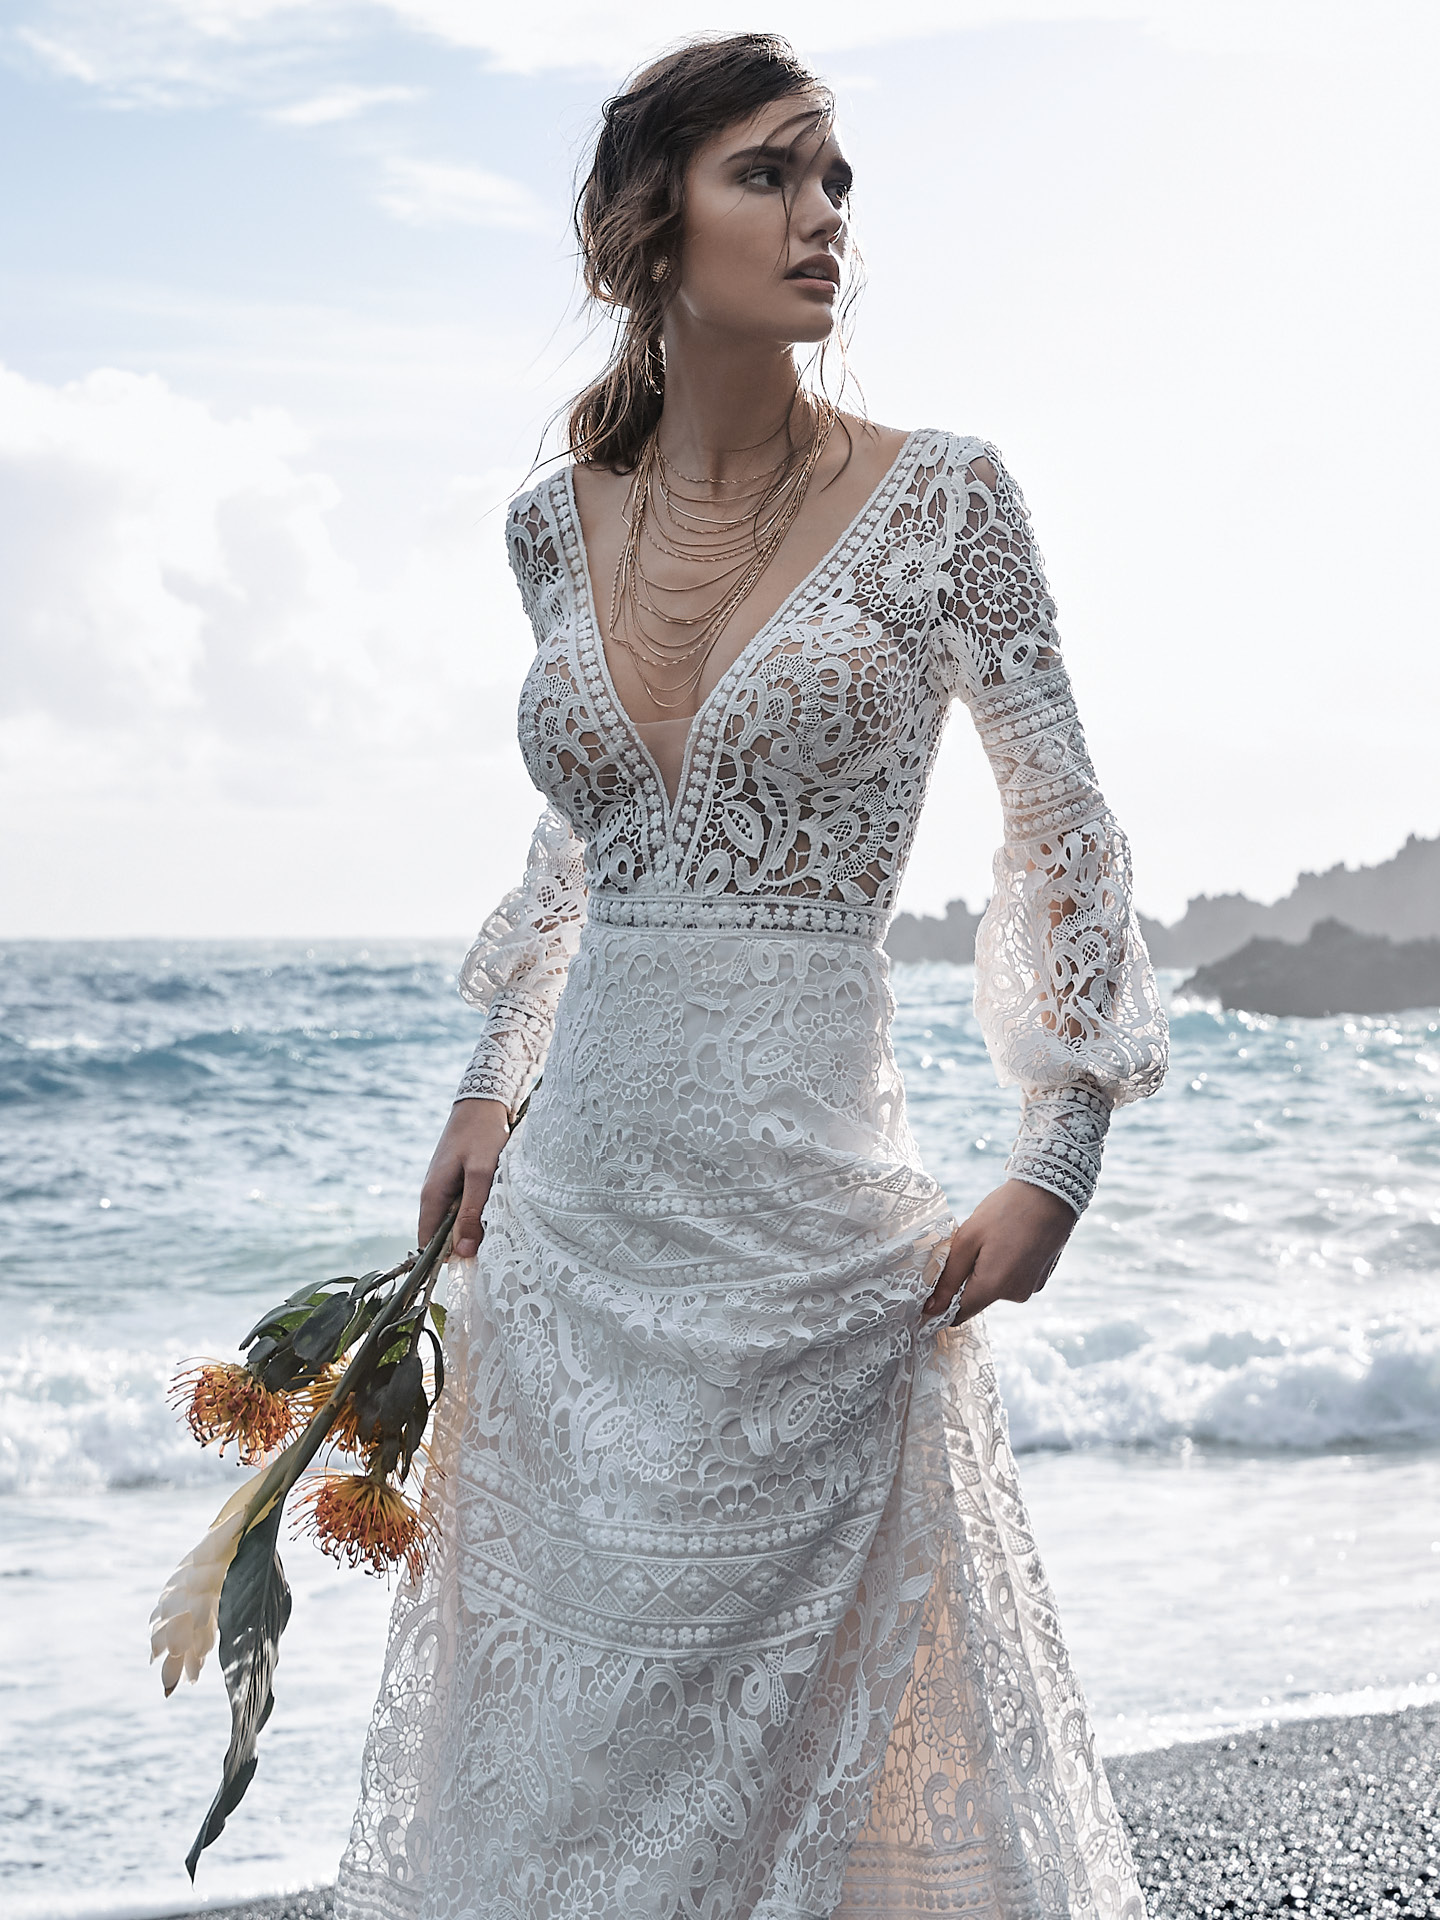 Model on Beach Wearing Lace Bishop Sleeve A-line Wedding Dress Called Finley by Sottero and Midgley